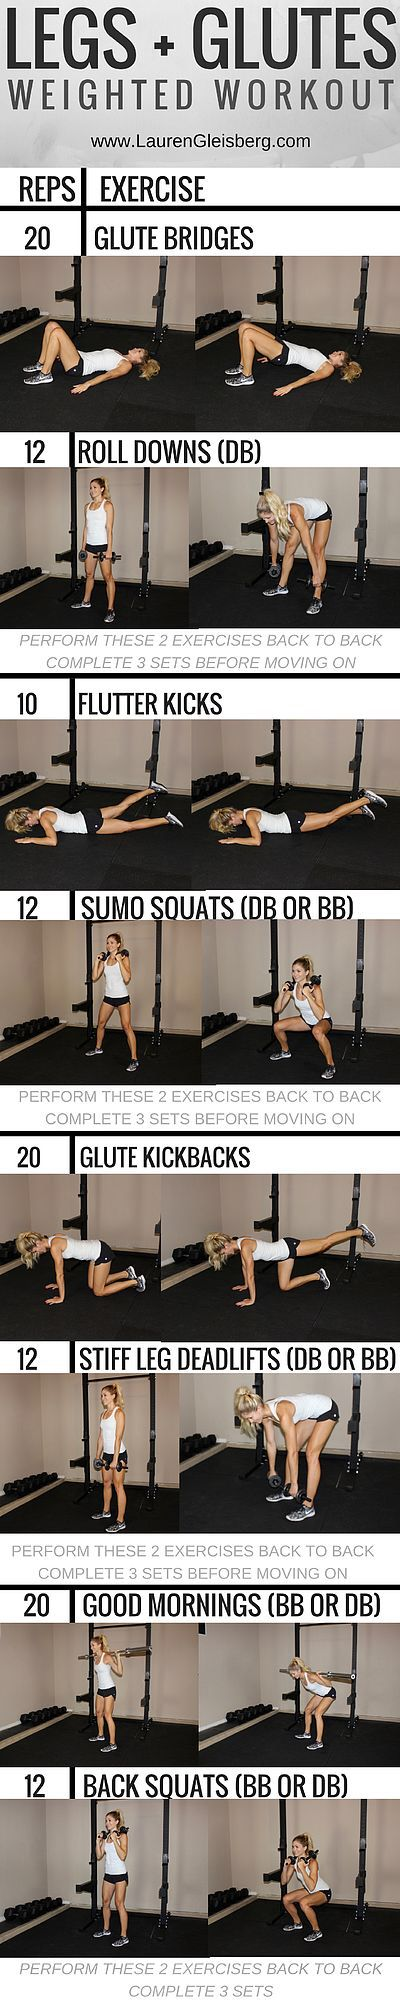 WORKOUT OF THE DAY: LOWER BODY STRENGTH